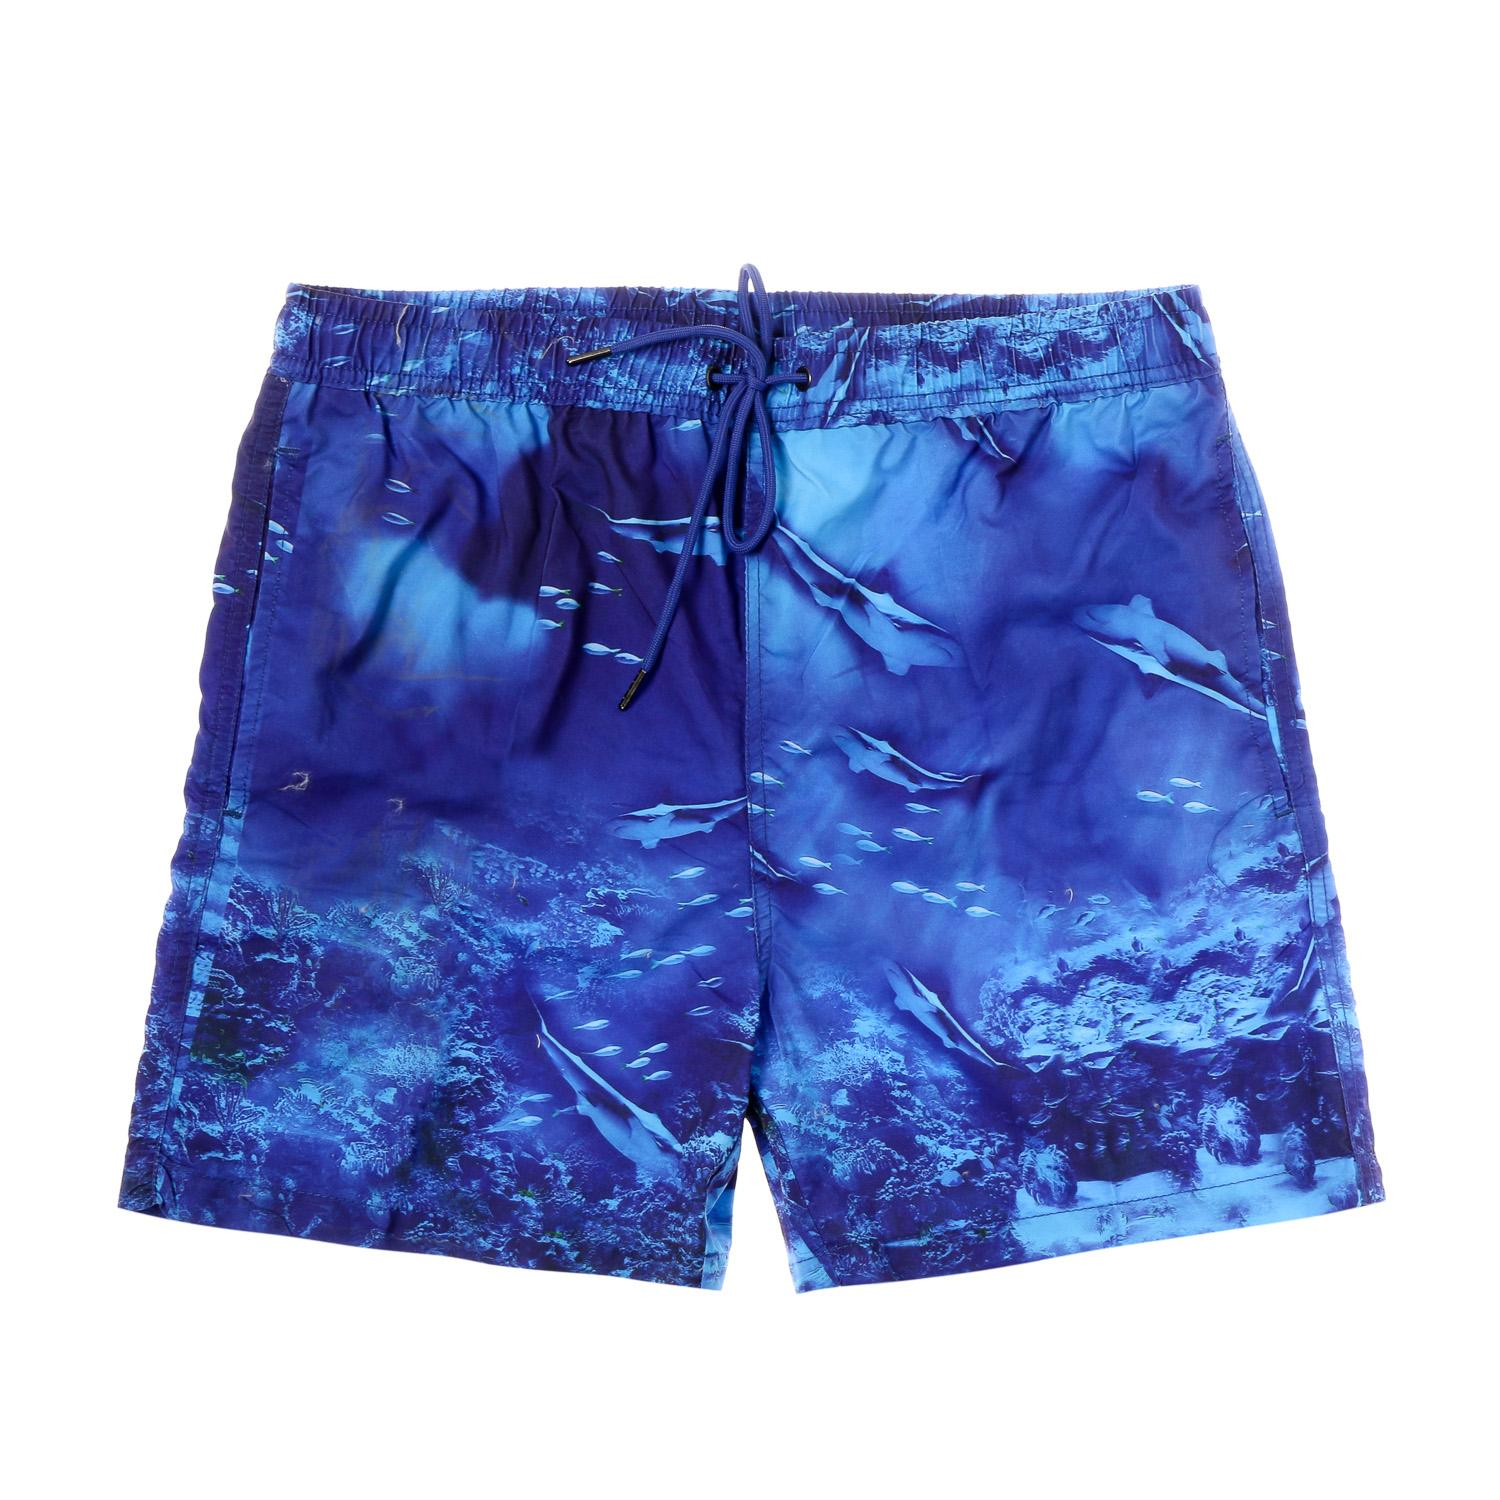 8b0da3350479f Swimwear for Men for sale - Mens Swimming Wear online brands, prices ...